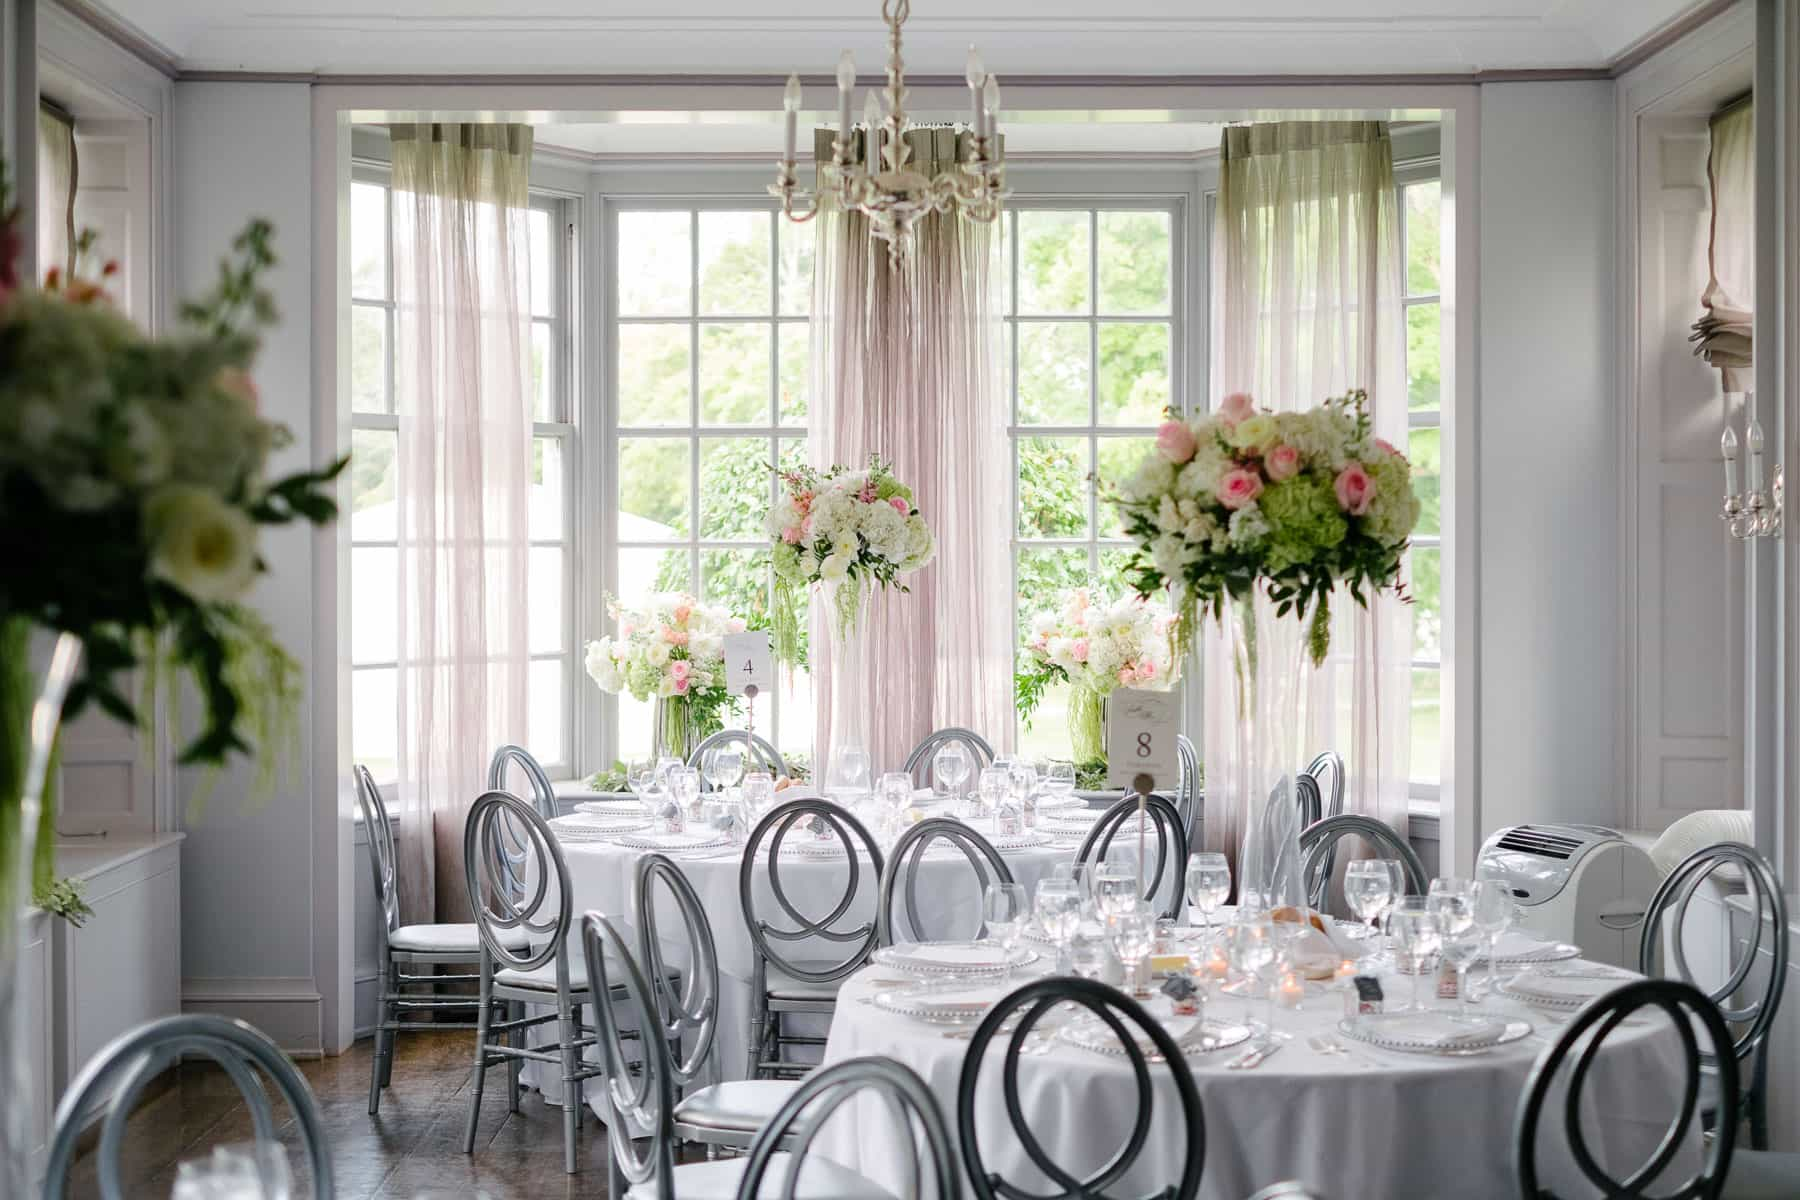 View of dinner reception hall with flowers and tables at McClain House, Estates of Sunnybrook.